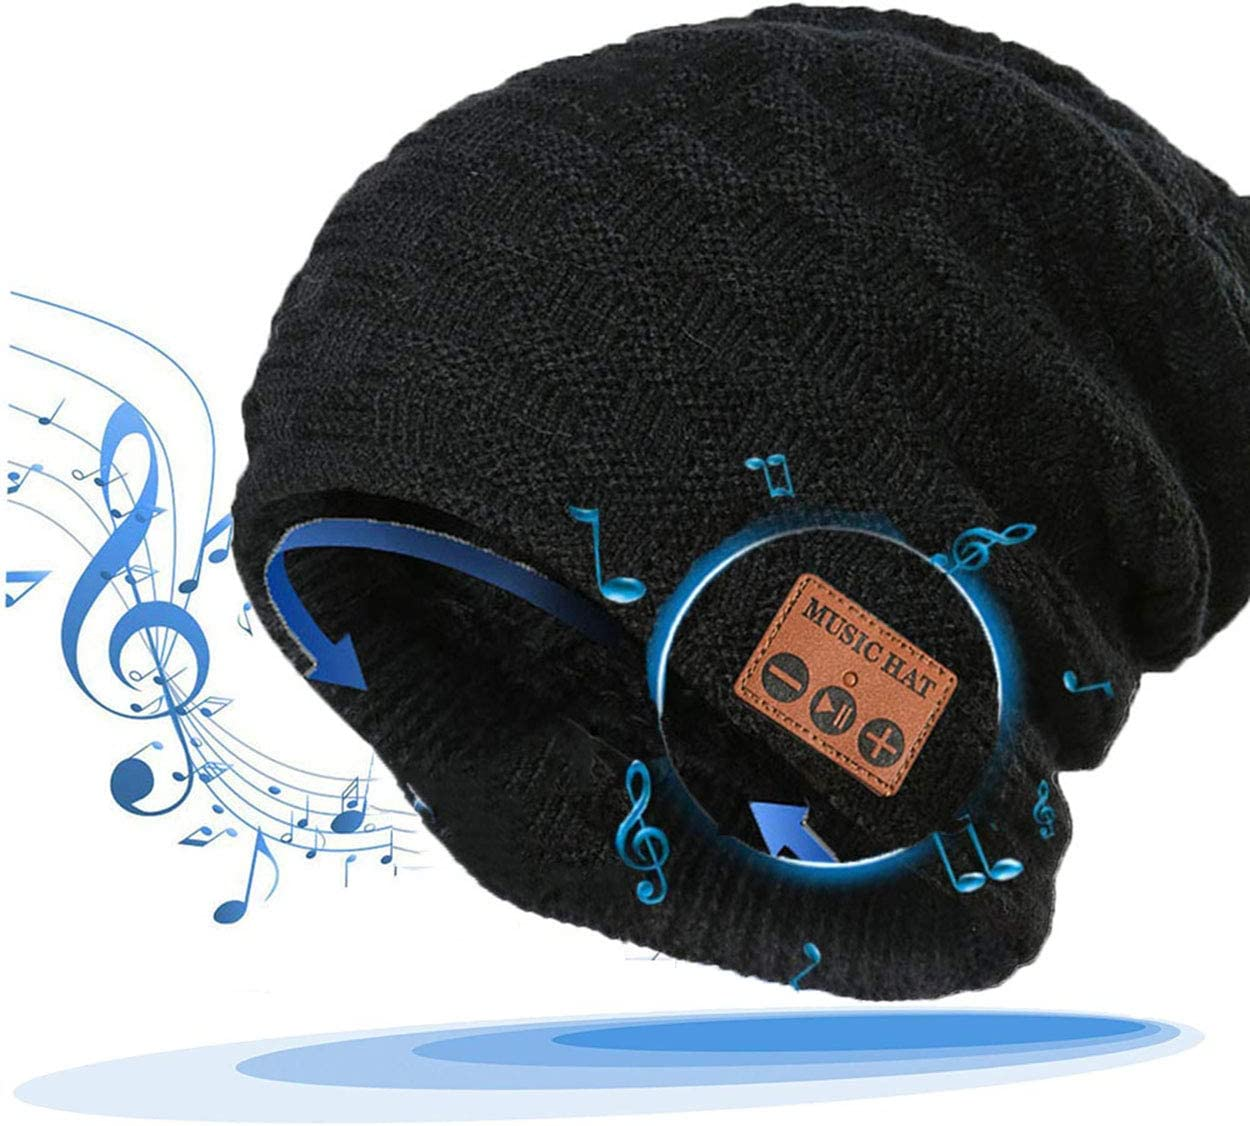 LiiFUNG 028 Wireless Bluetooth 5.0 Beanie Hat with Headphones | Great Christmas Tech Gifts for Teen Boys/Girls/Boyfriend/Him/Husband/Men/Dad/Women/ Stocking Stuffers/Built-in HD Speaker & Mic - Black